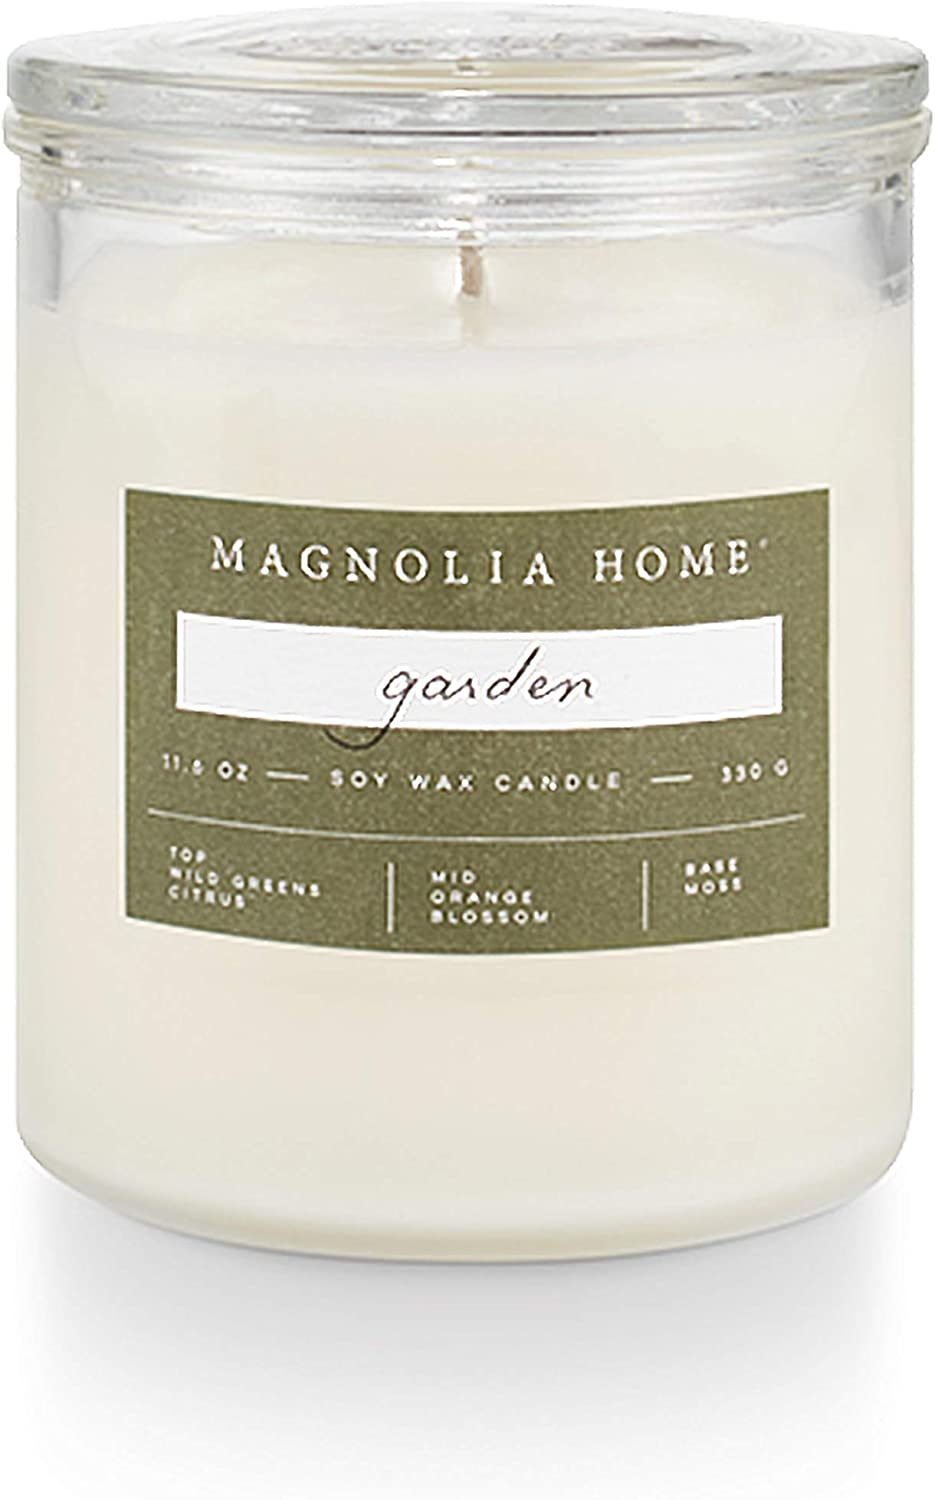 Magnolia Home Garden Lidded-Glass Candle Home Decor by Joanna Gaines